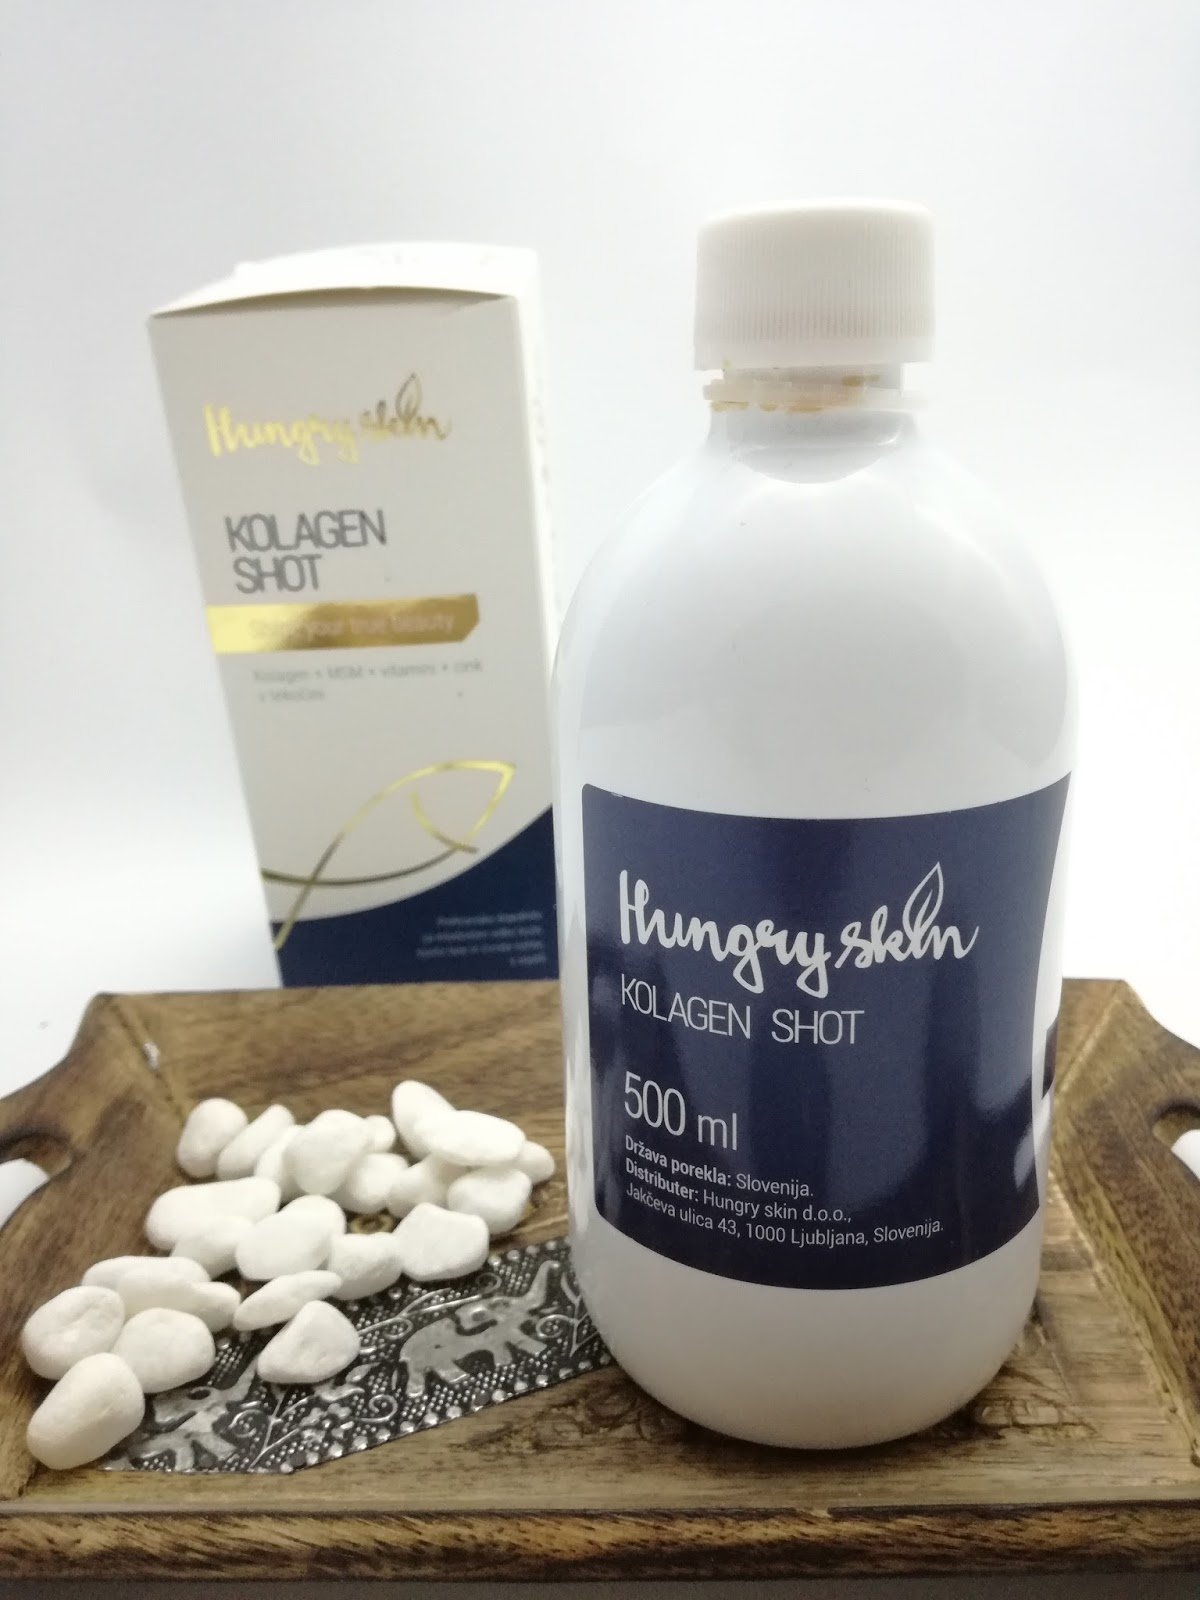 gaia-naturelle-hungry-skin-kolagen-shot-collagen